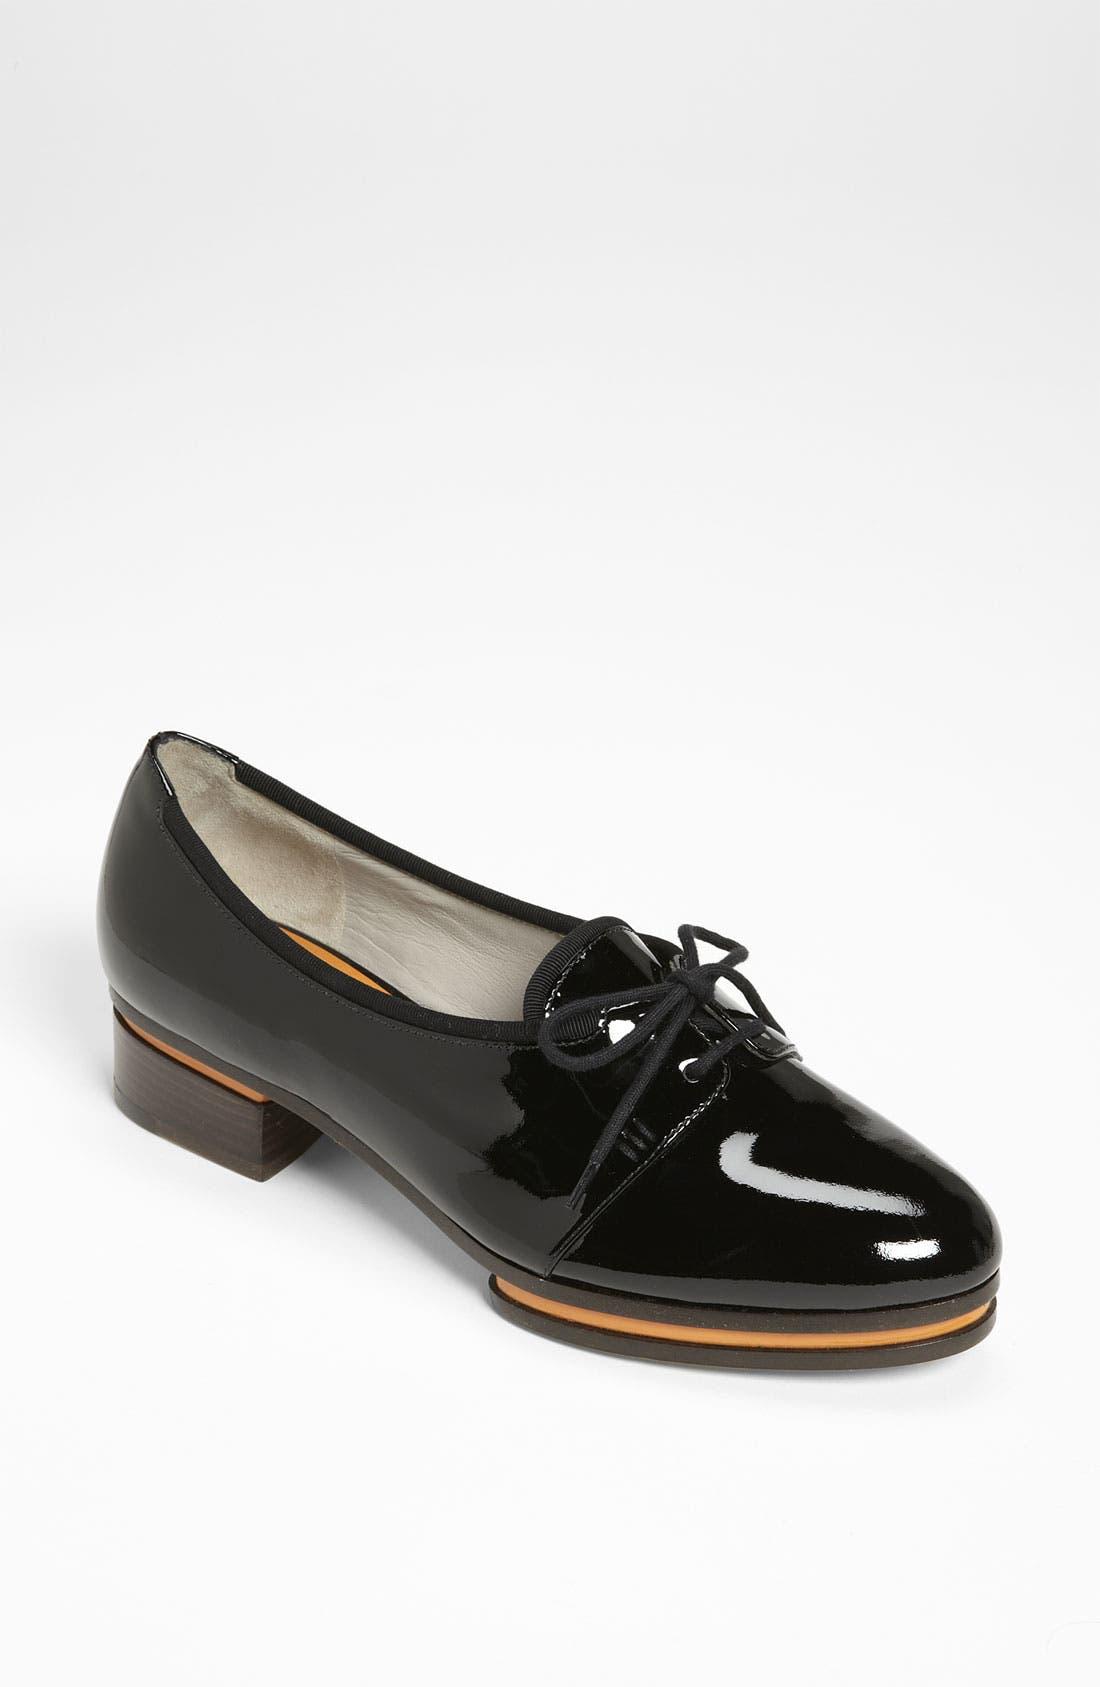 Alternate Image 1 Selected - Jason Wu 'Terese' Oxford